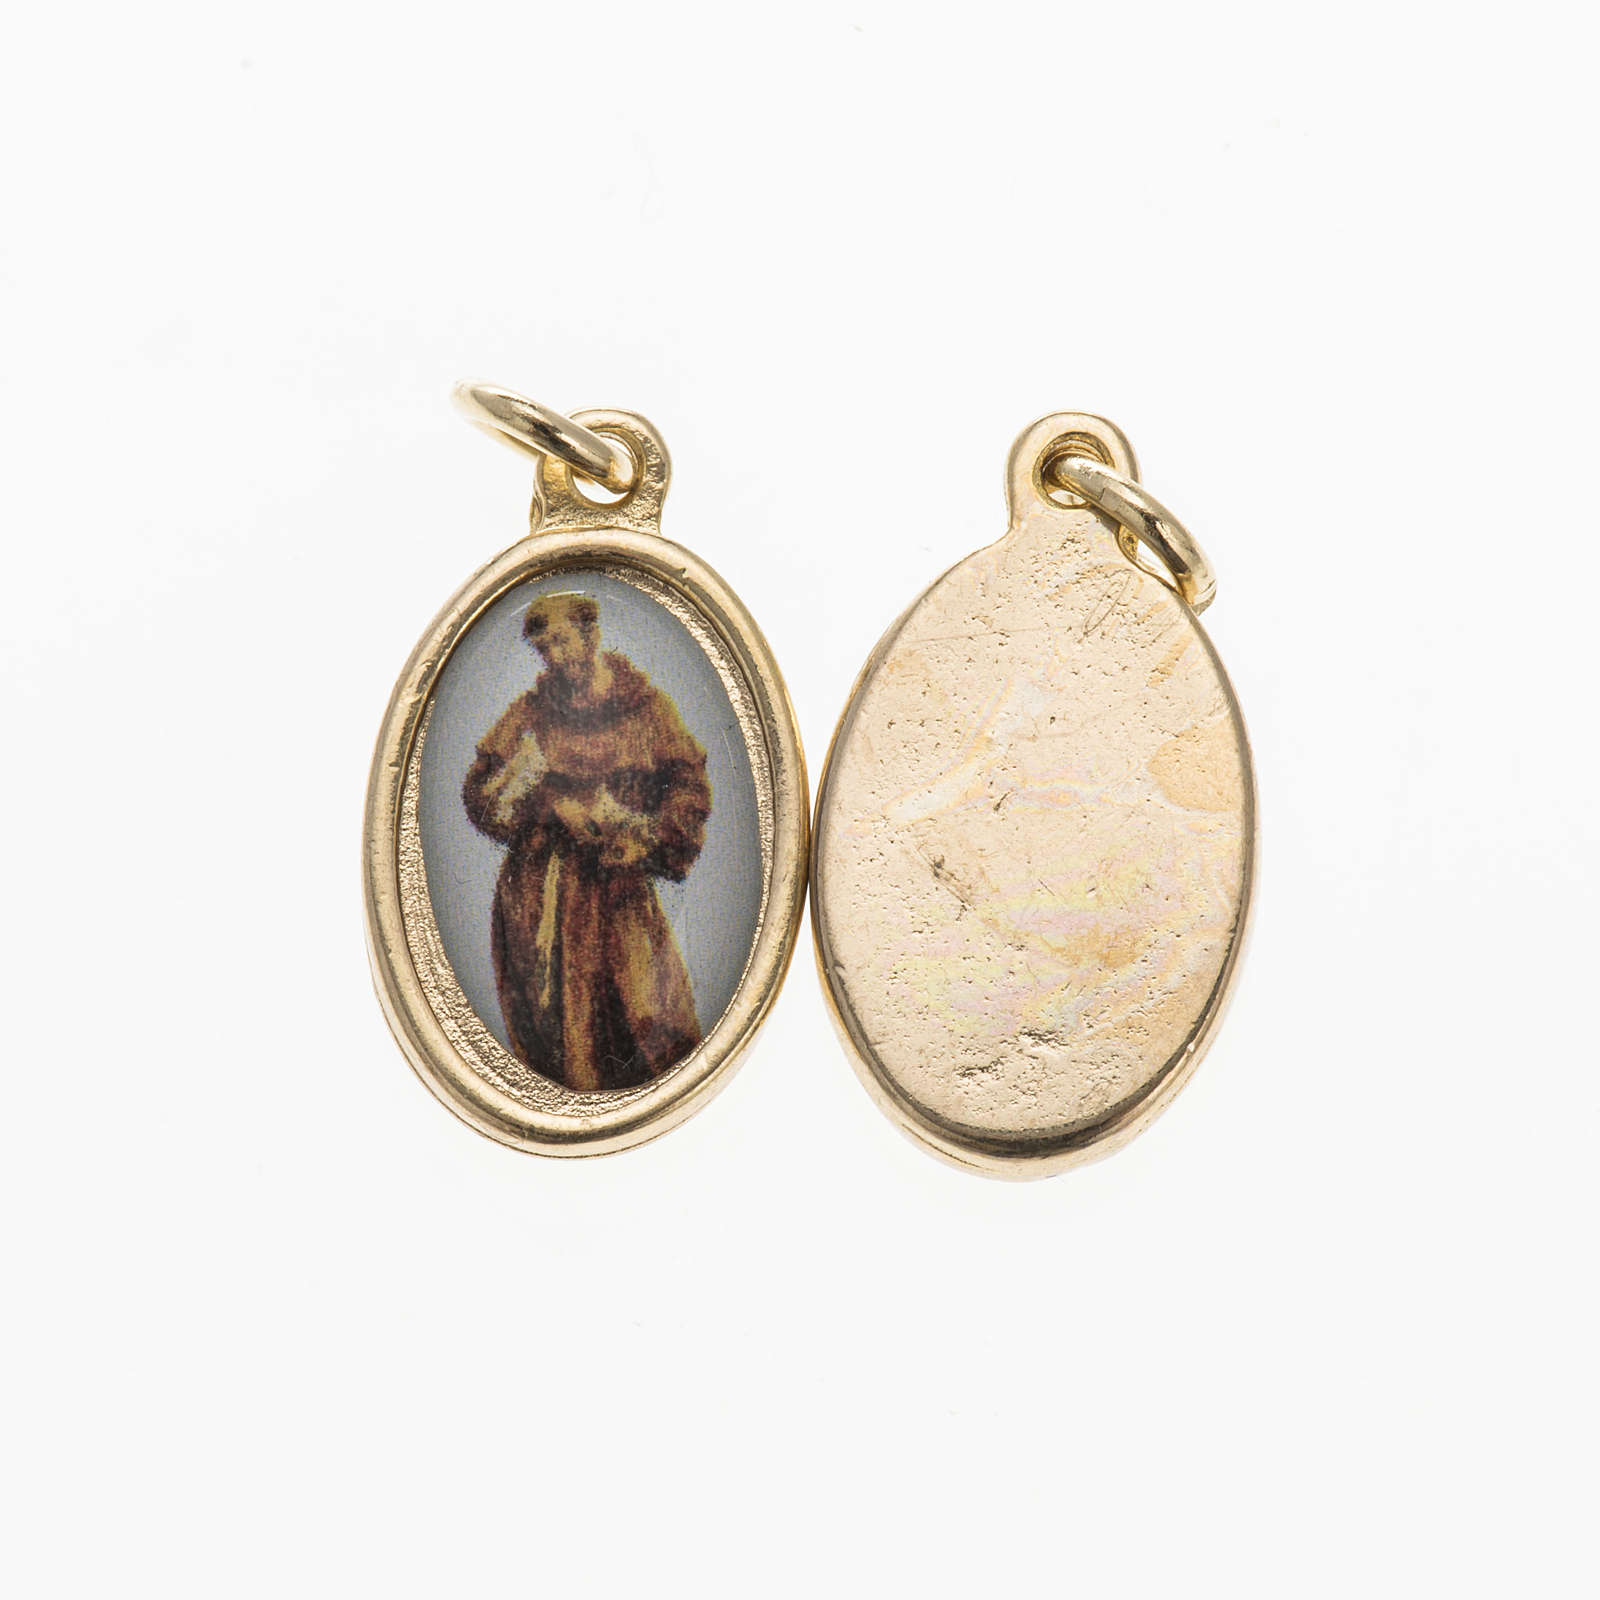 St Francis medal in gilded metal and resin 1,5x1cm 4